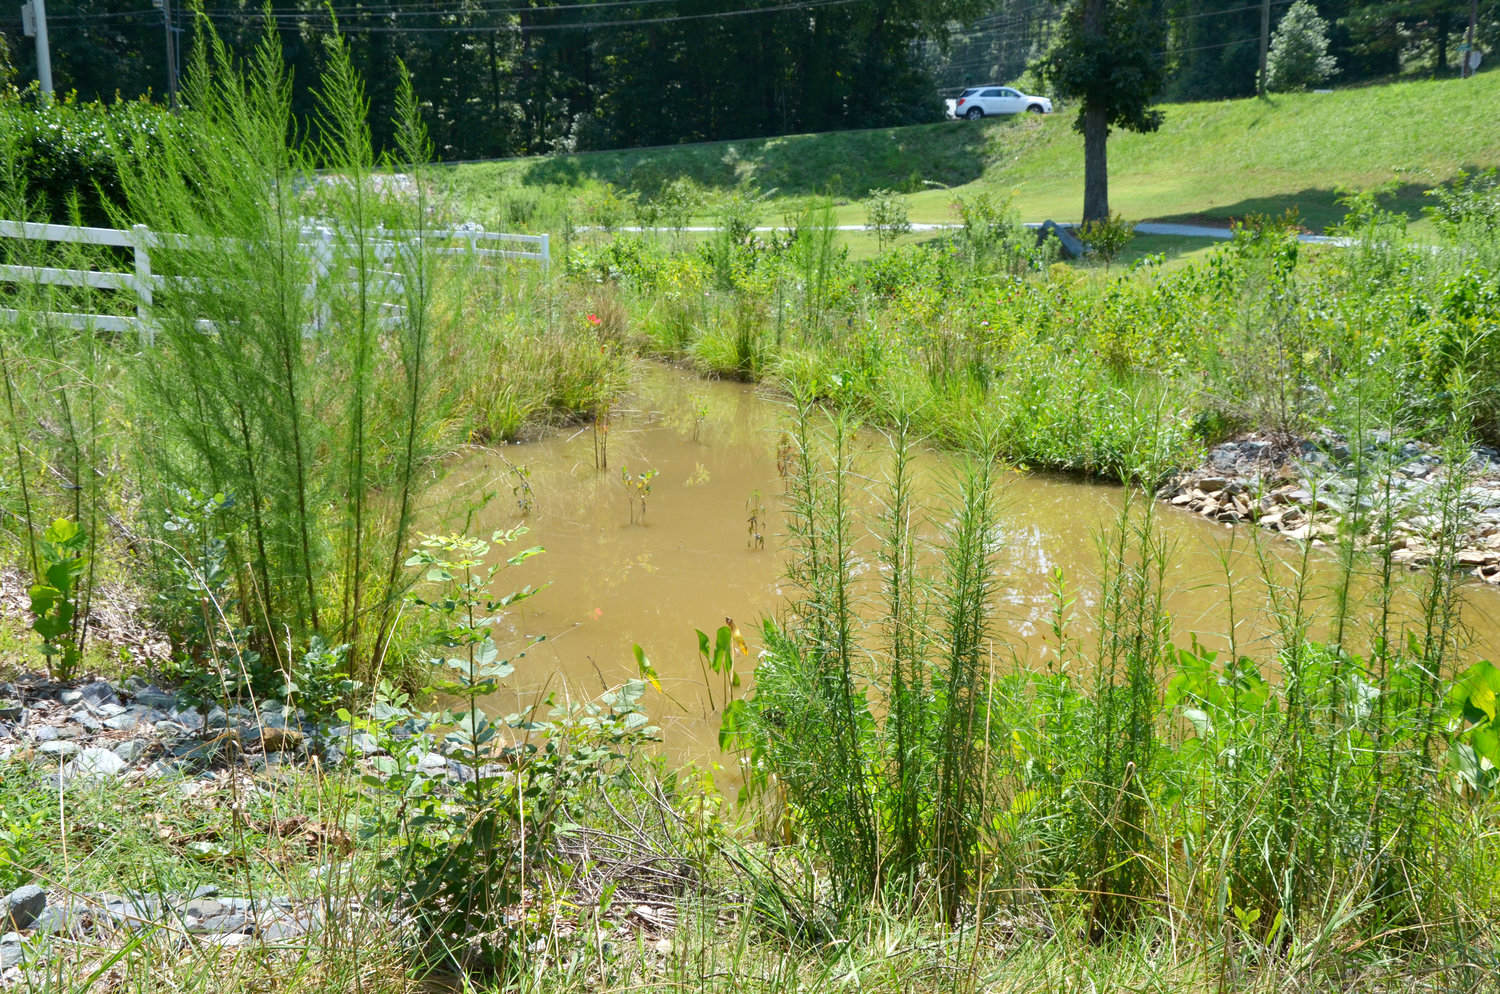 The wetlands and riparian buffer at Boling Lane Park were constructed to slow flooding, to help clean and filter the storm runoff and to create a habitat for dragonflies that reduce mosquito populations..